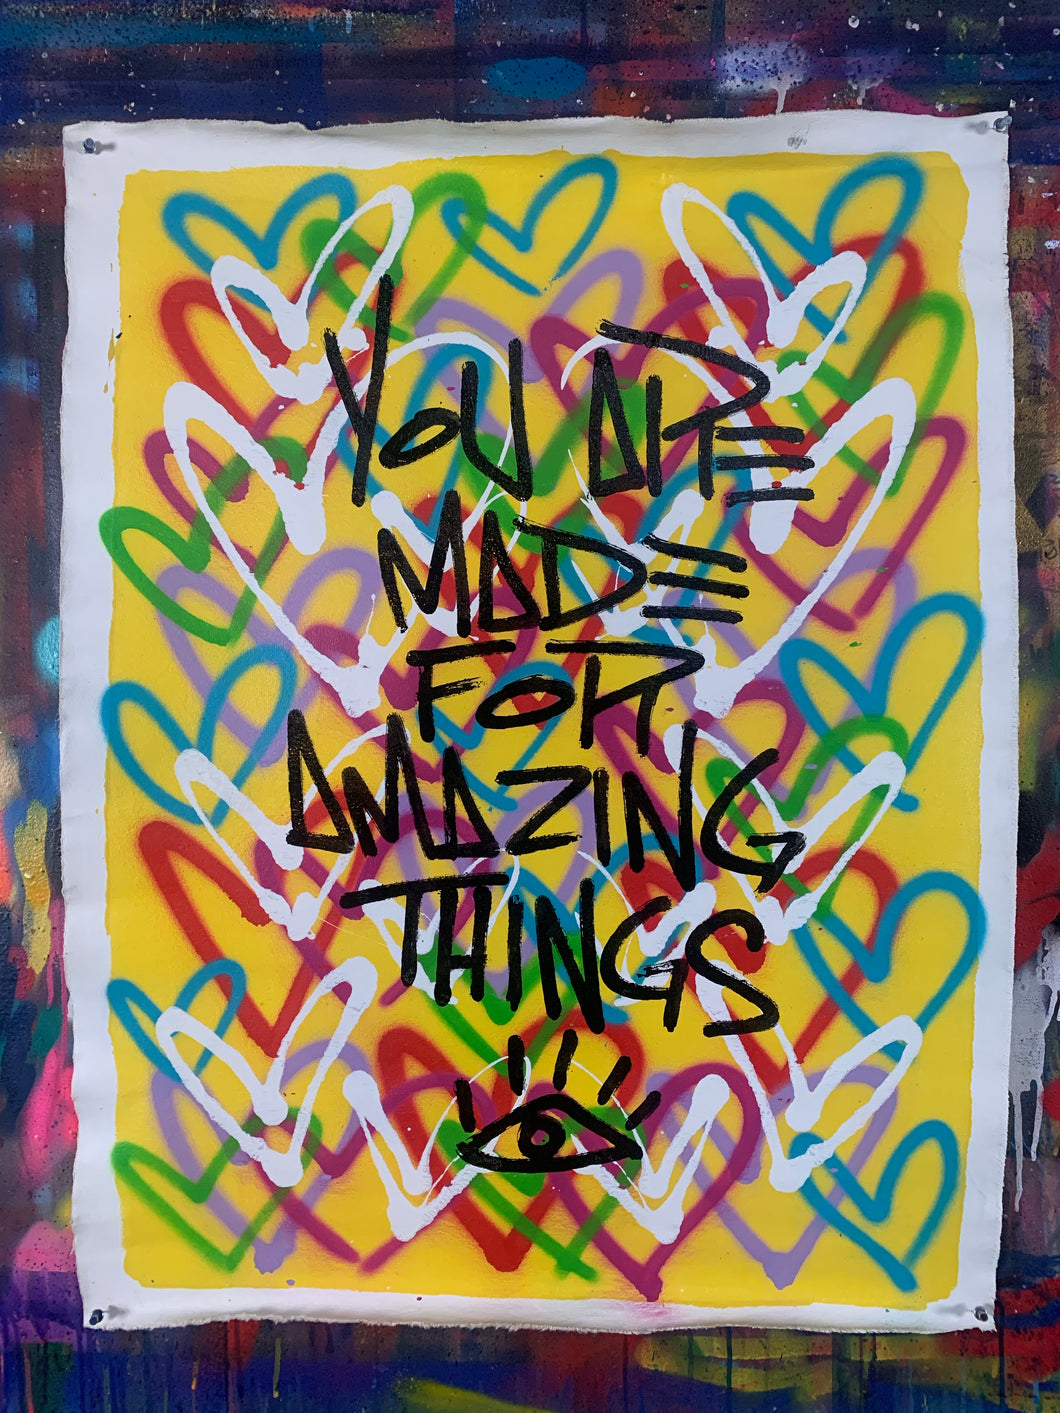 Amazing things / yellow / heart mantra